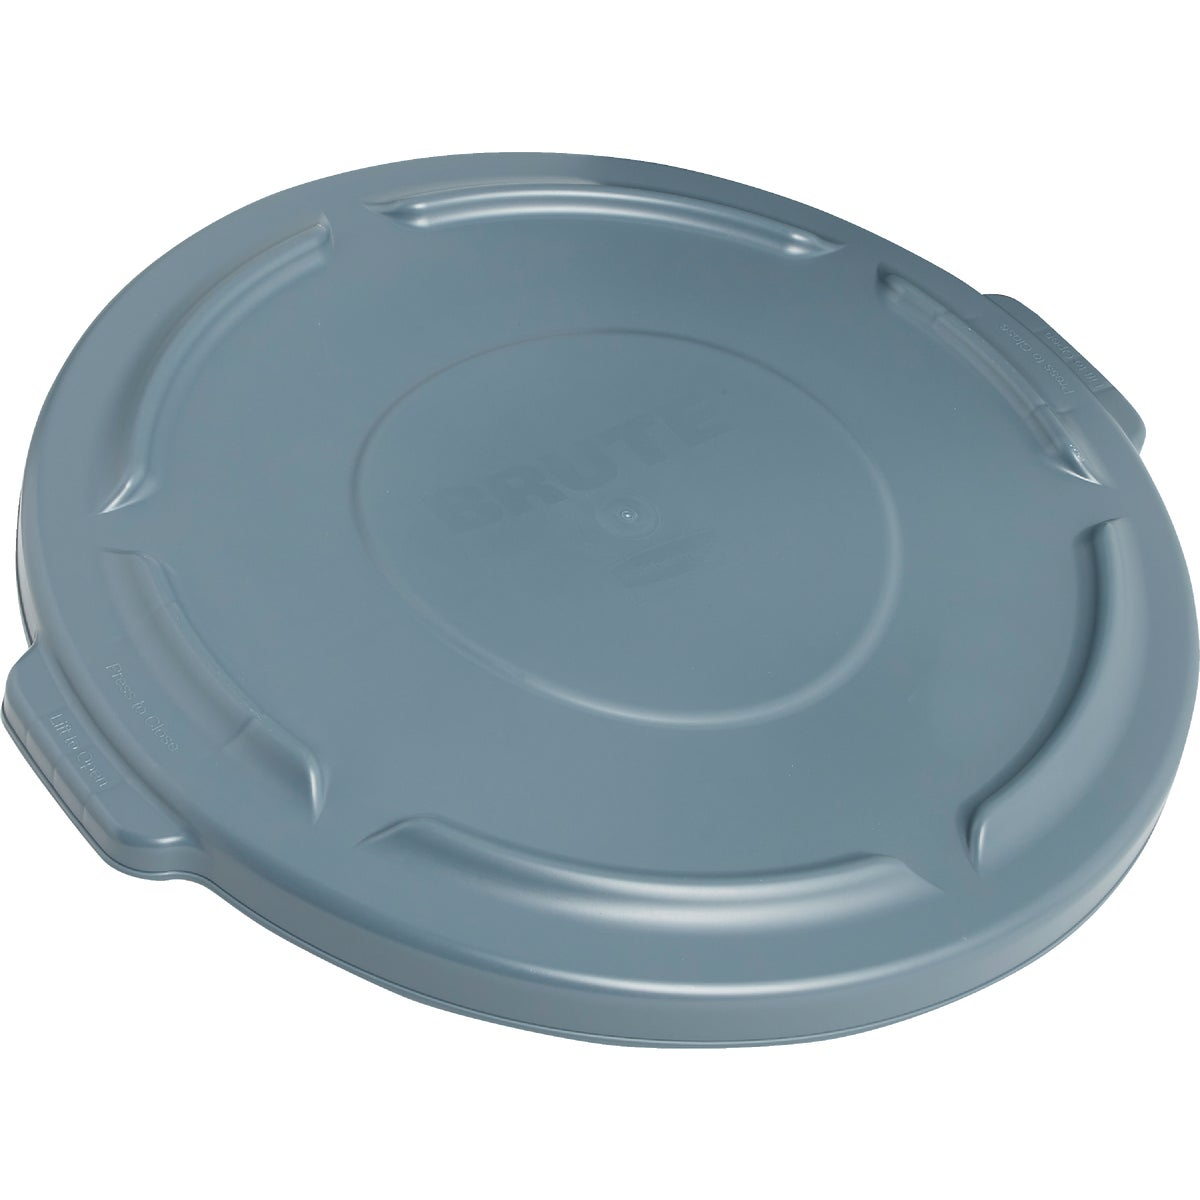 GRAY TRASH CAN LID